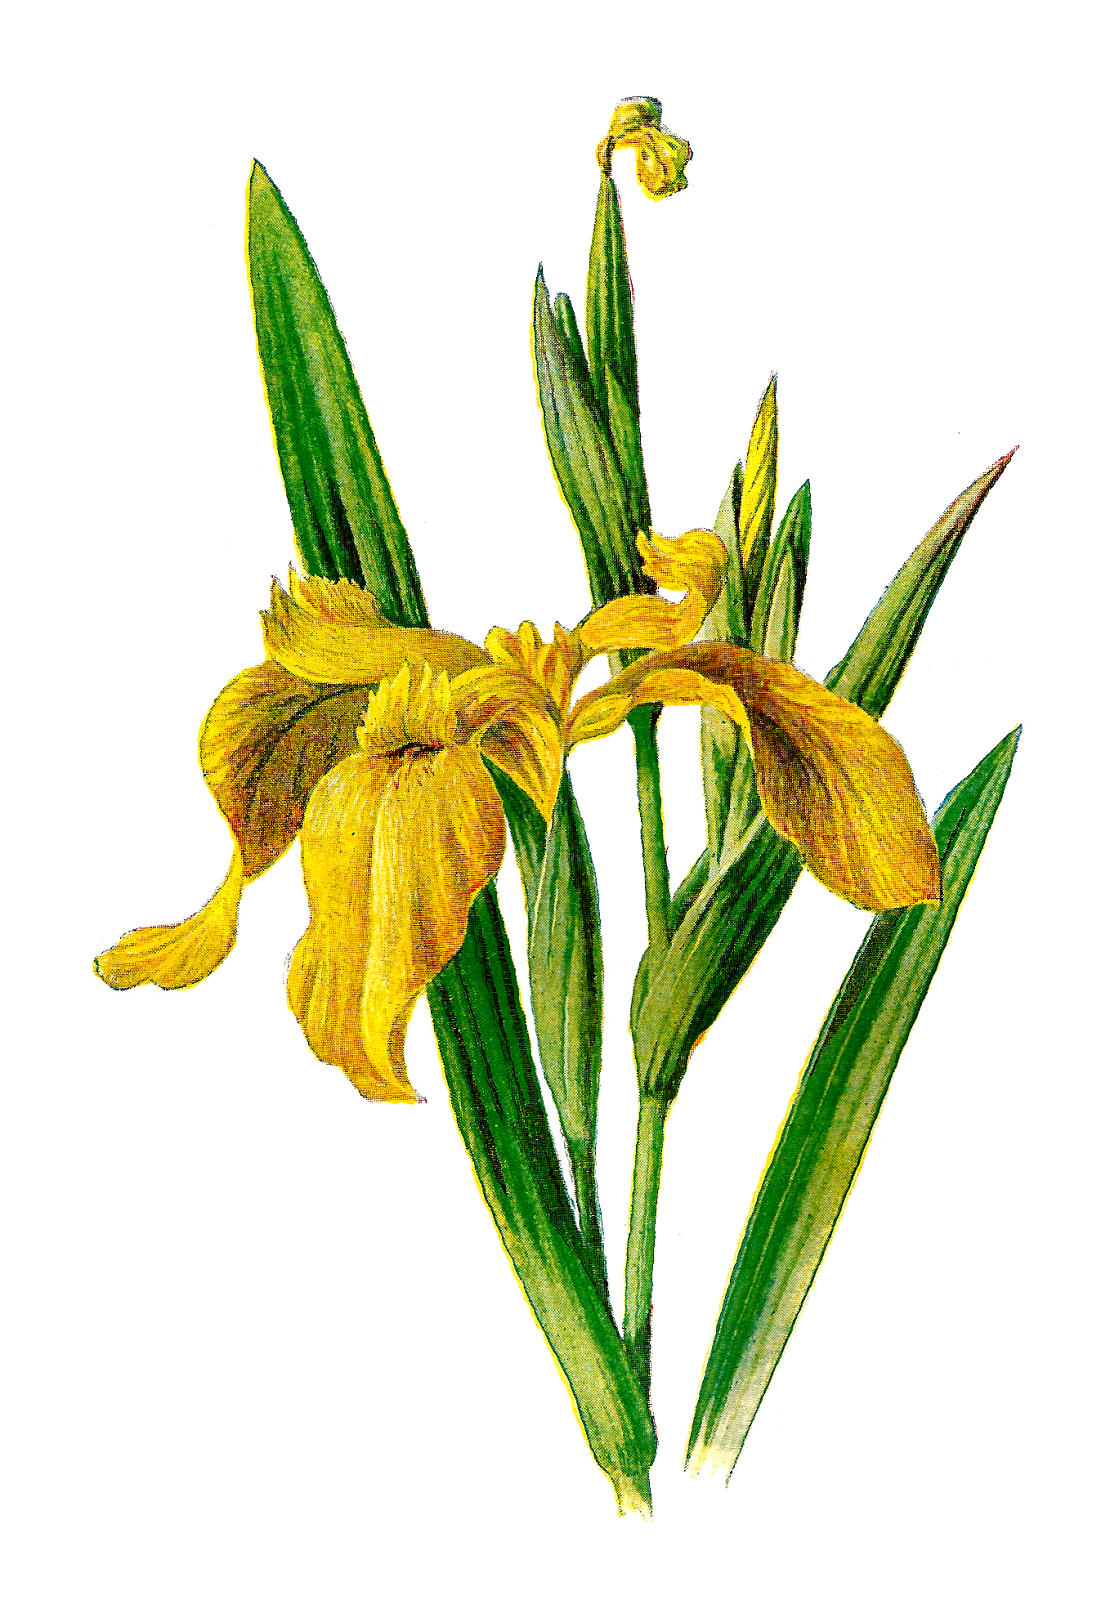 Flower seed clipart jpg transparent library Iris Clipart at GetDrawings.com | Free for personal use Iris Clipart ... jpg transparent library